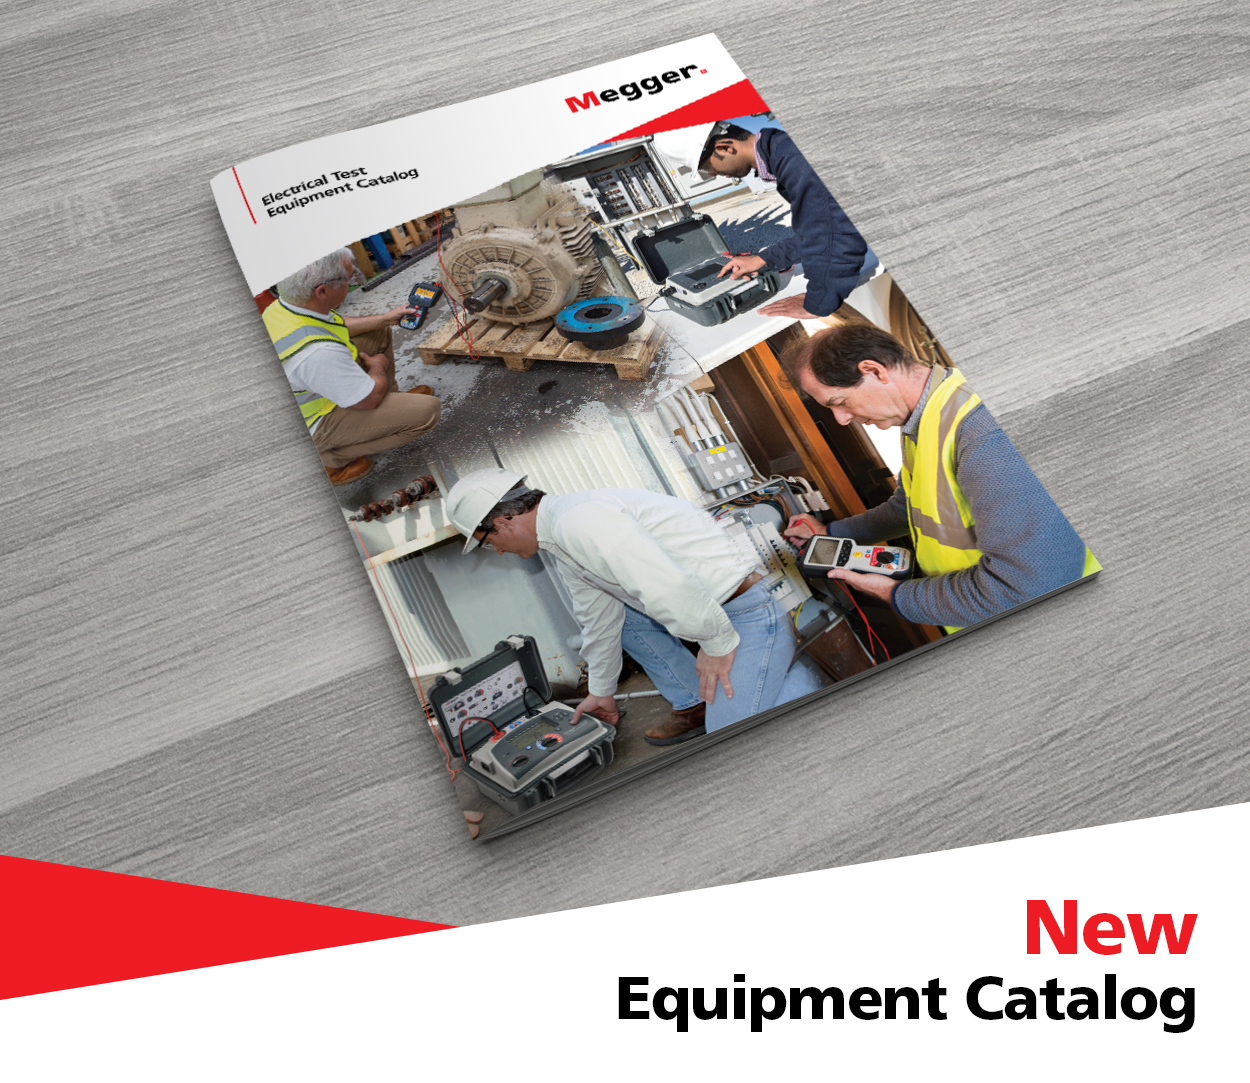 NEW Electrical Test Equipment Catalog